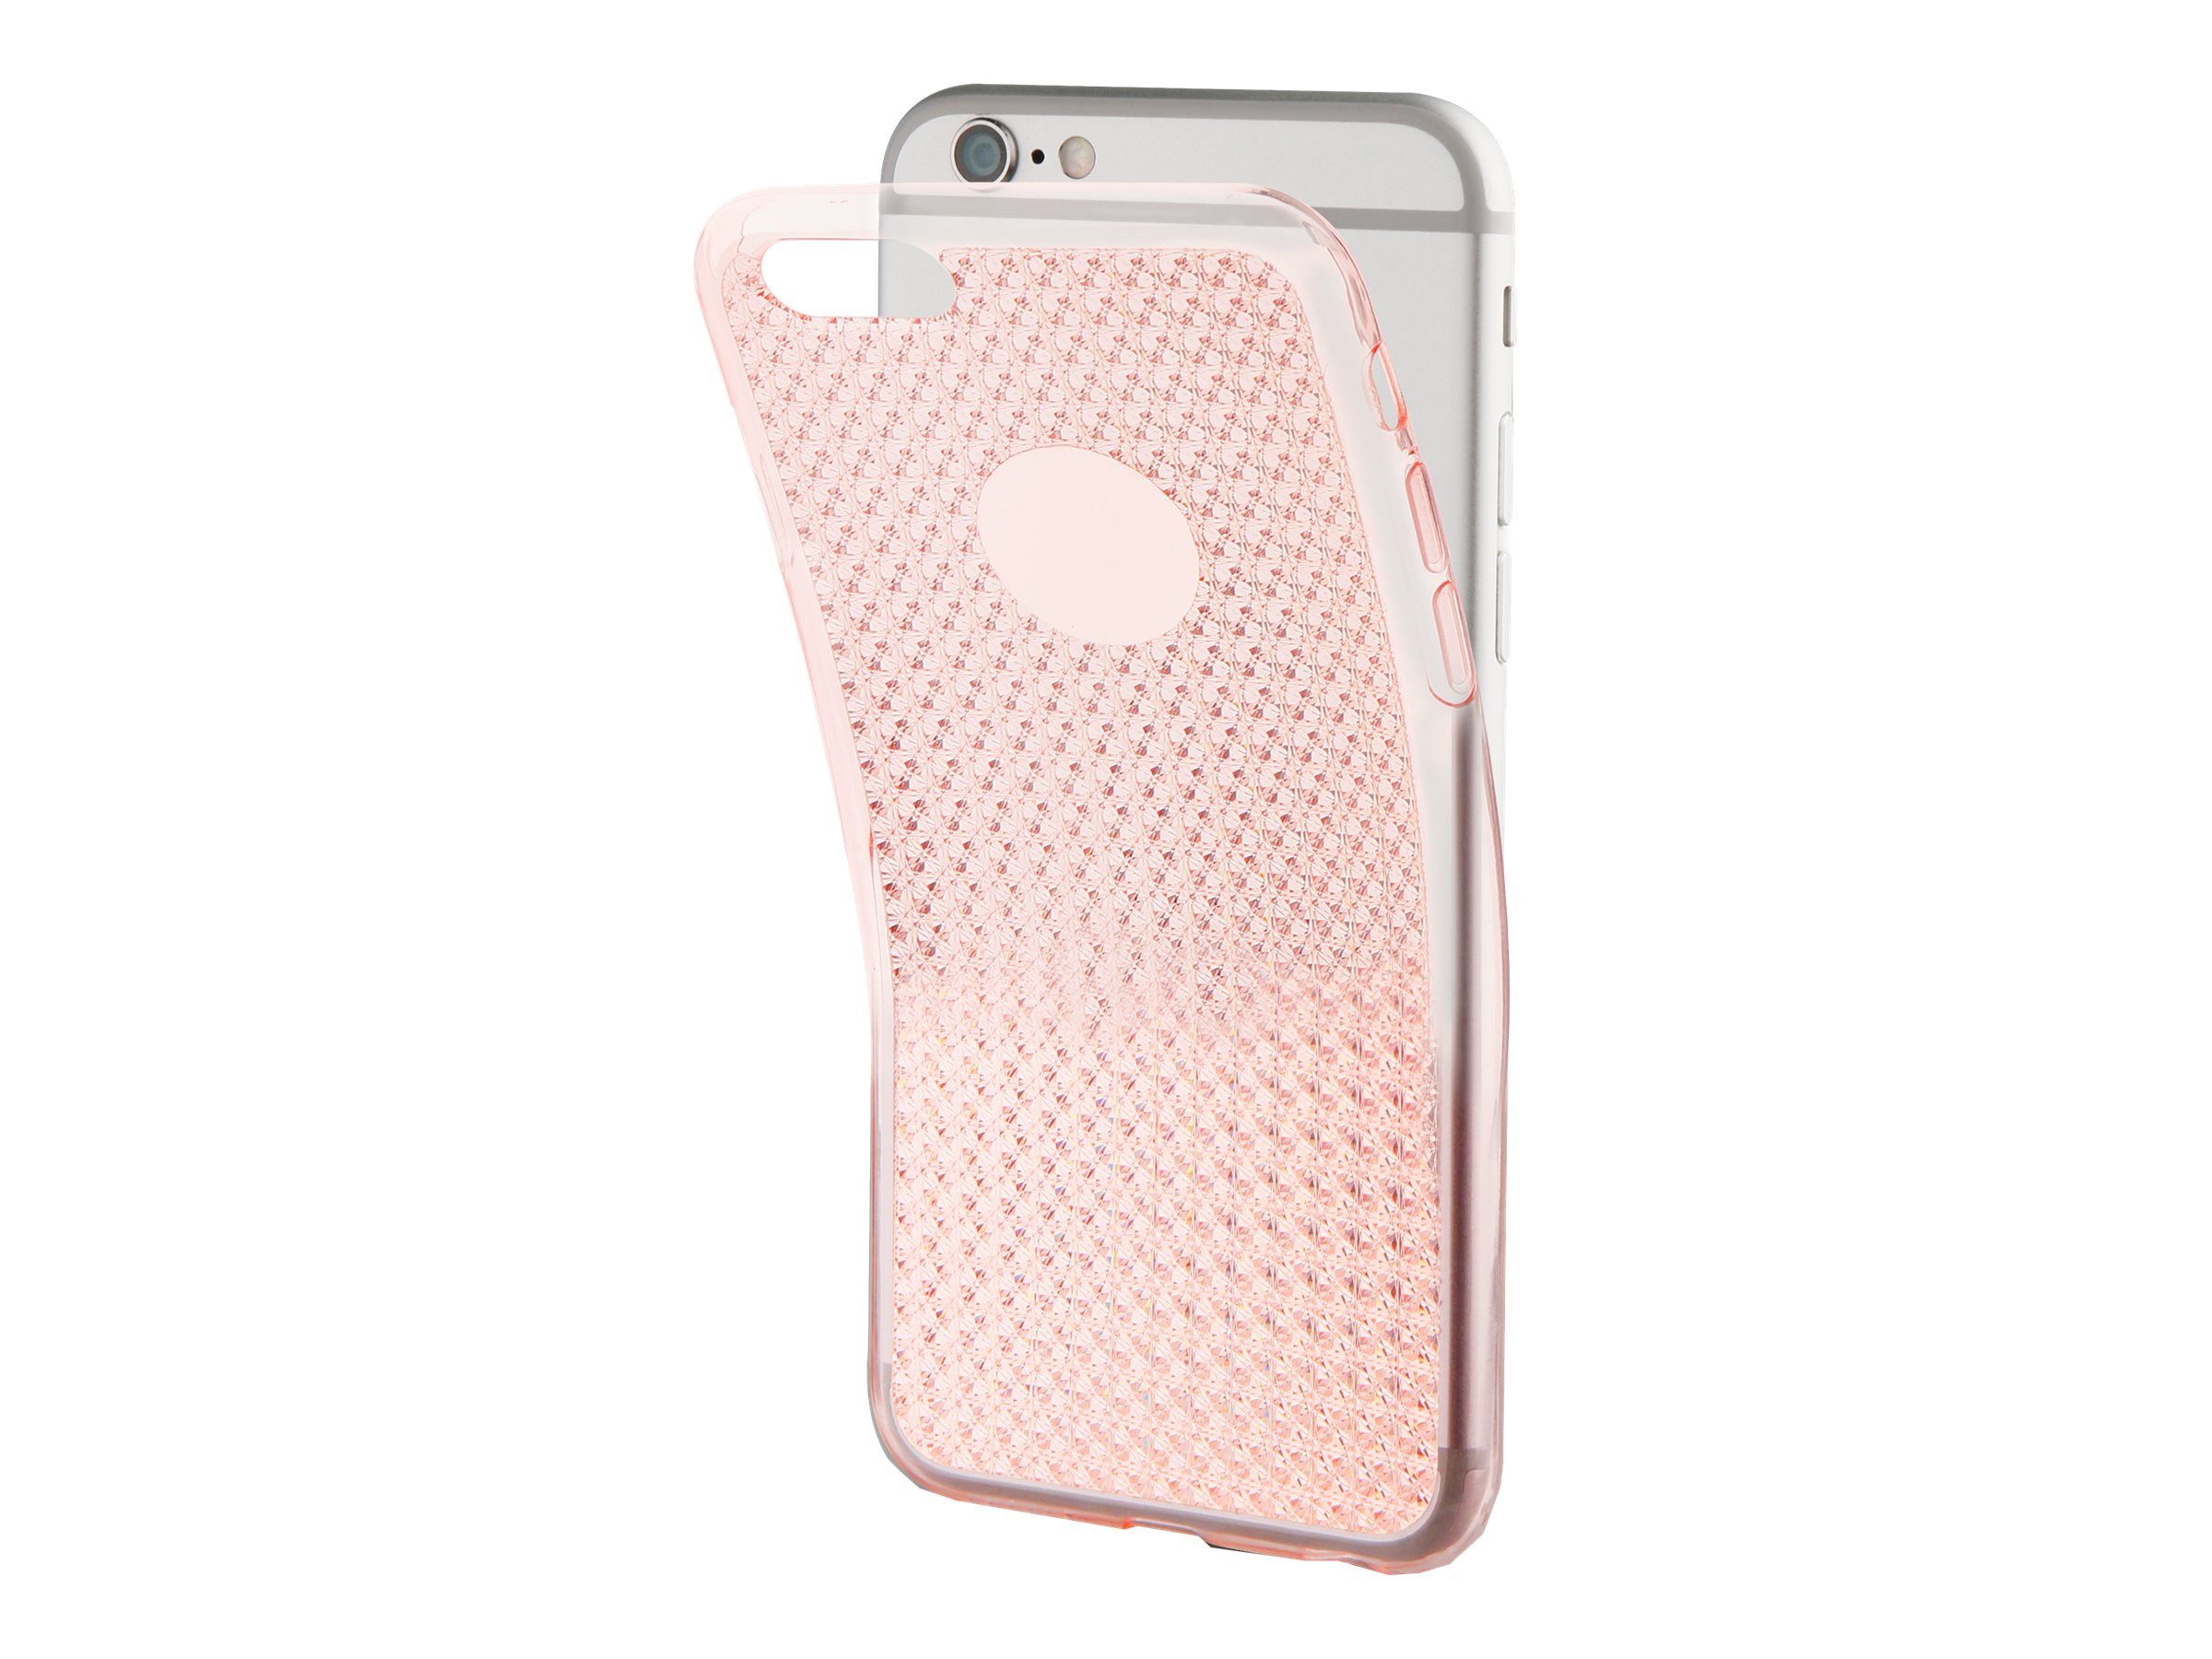 MUVIT LIFE - Coque de protection pour iPhone 7 Plus - rose